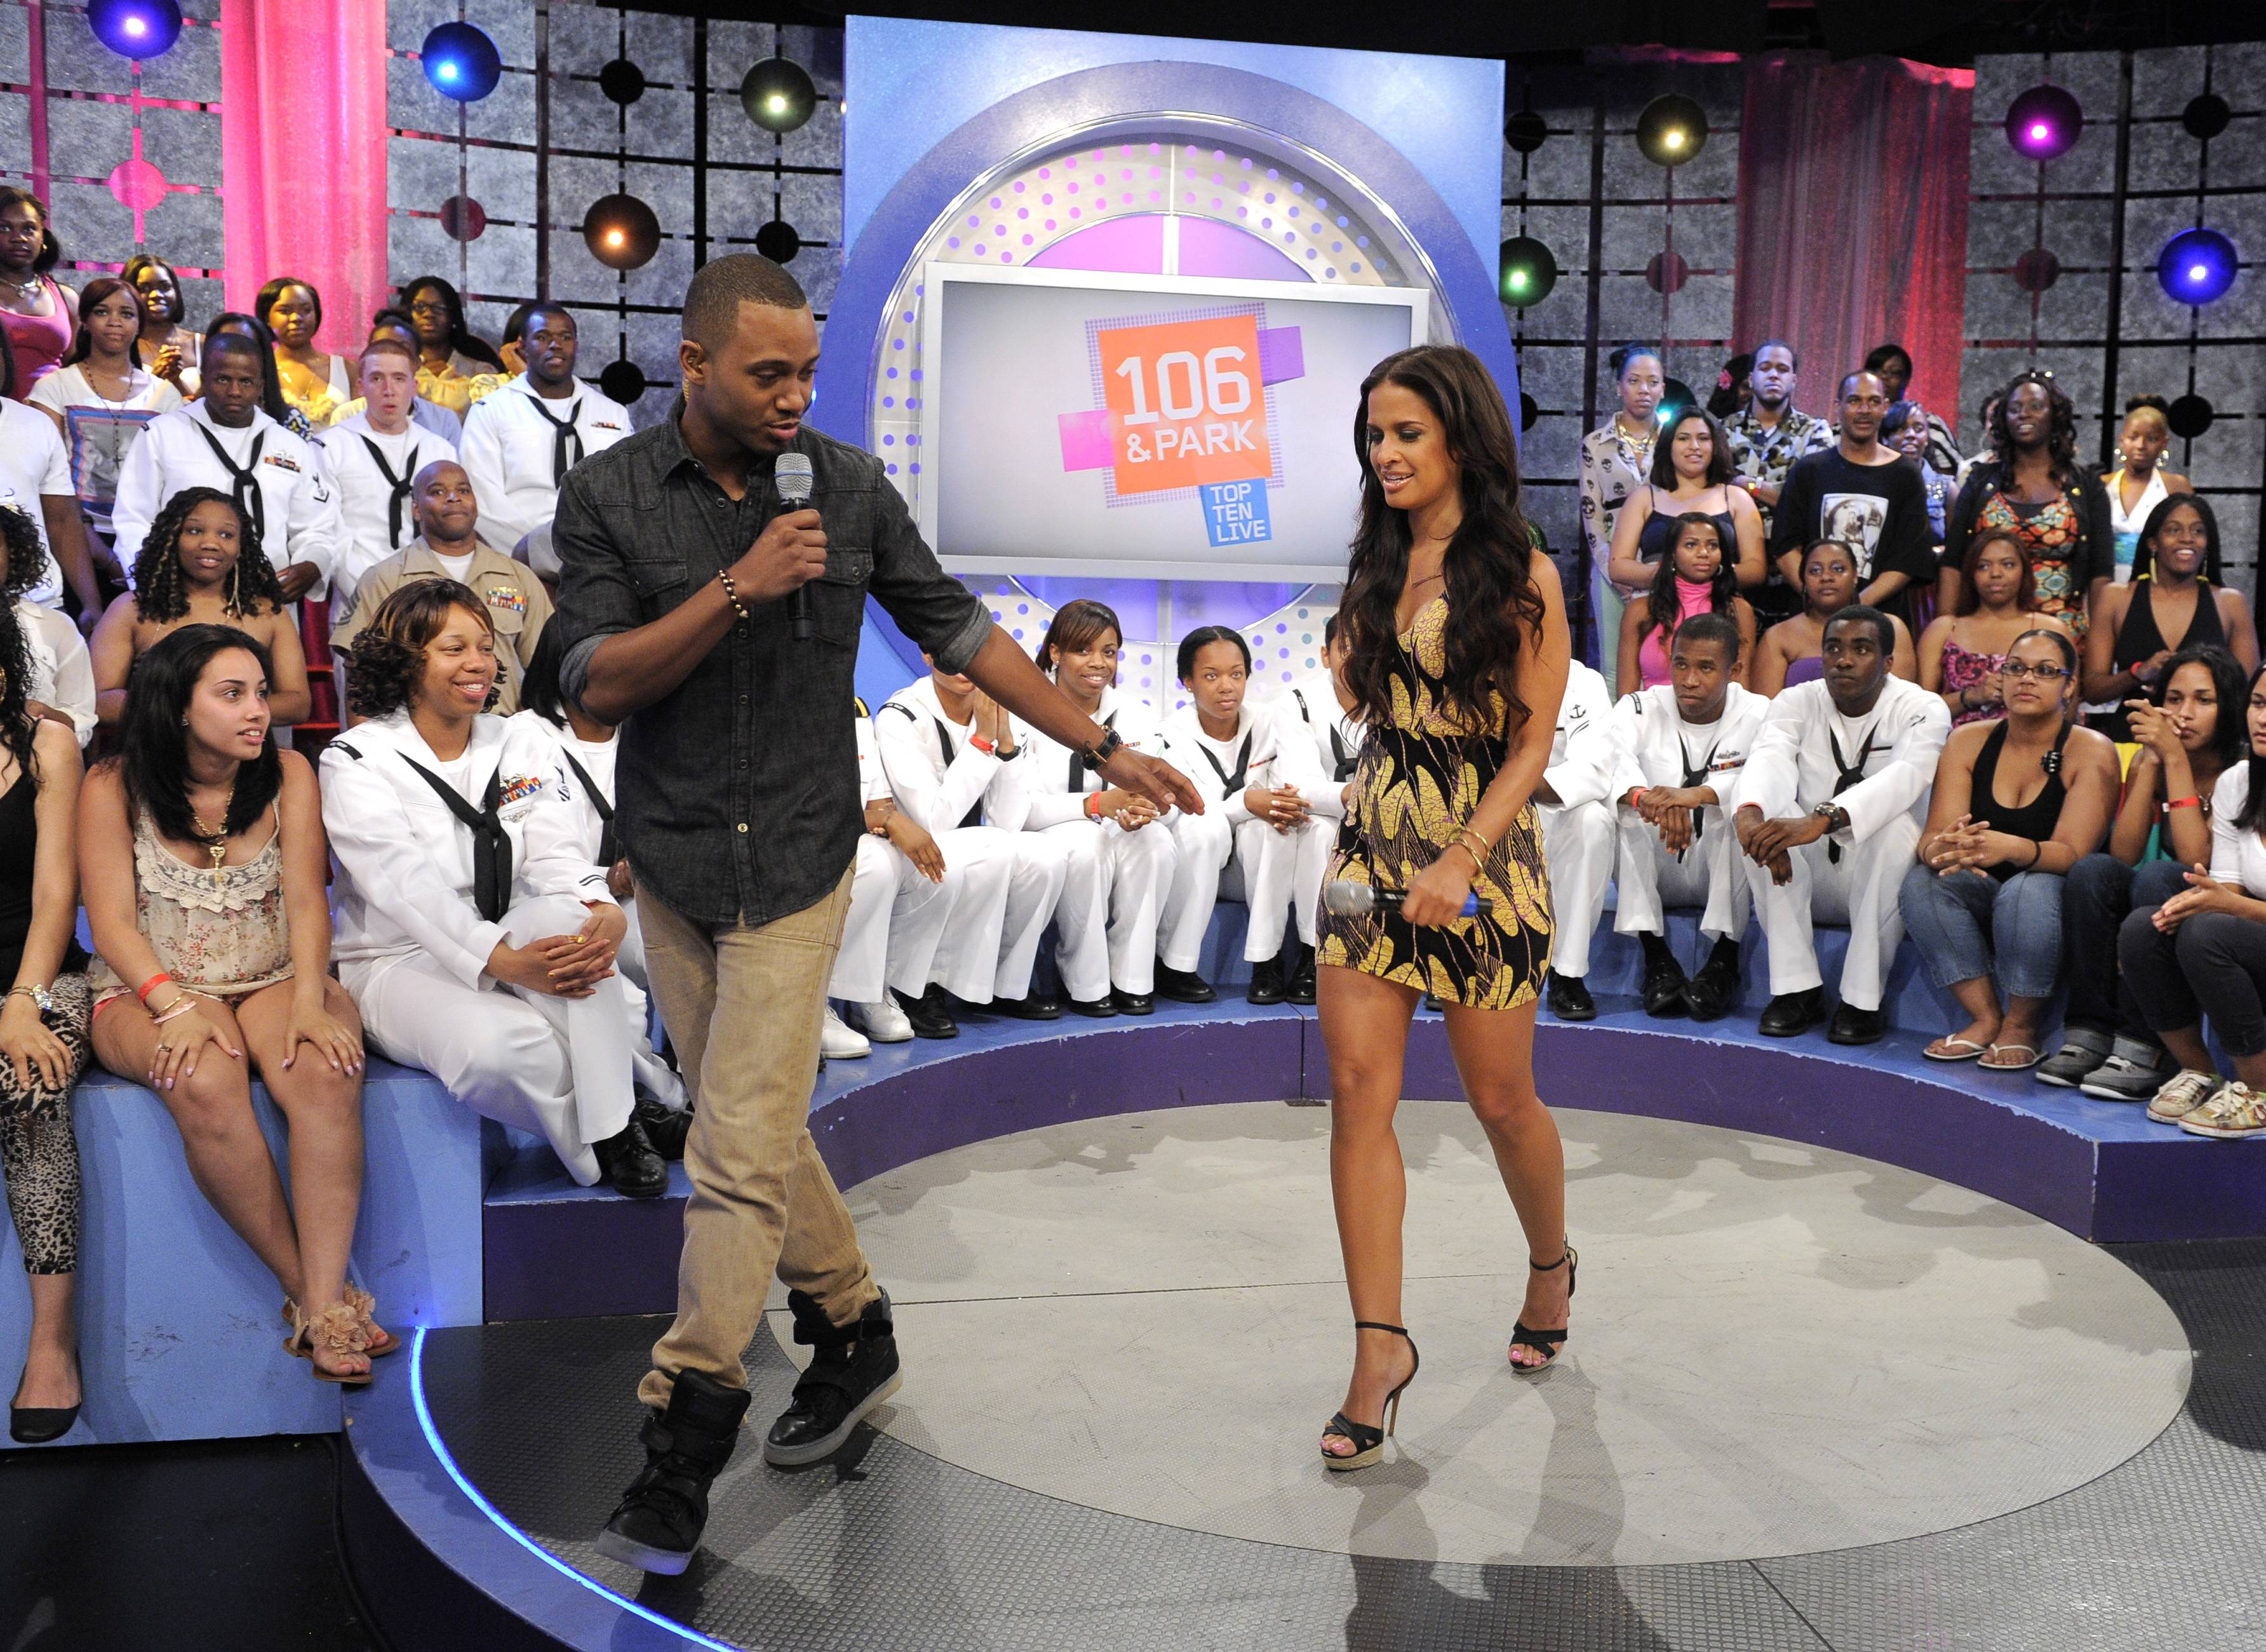 Come On - Terrence J and Rocsi Diazmake their way to the couch to make a special announcement at 106 & Park, May 29, 2012. (Photo: John Ricard / BET)